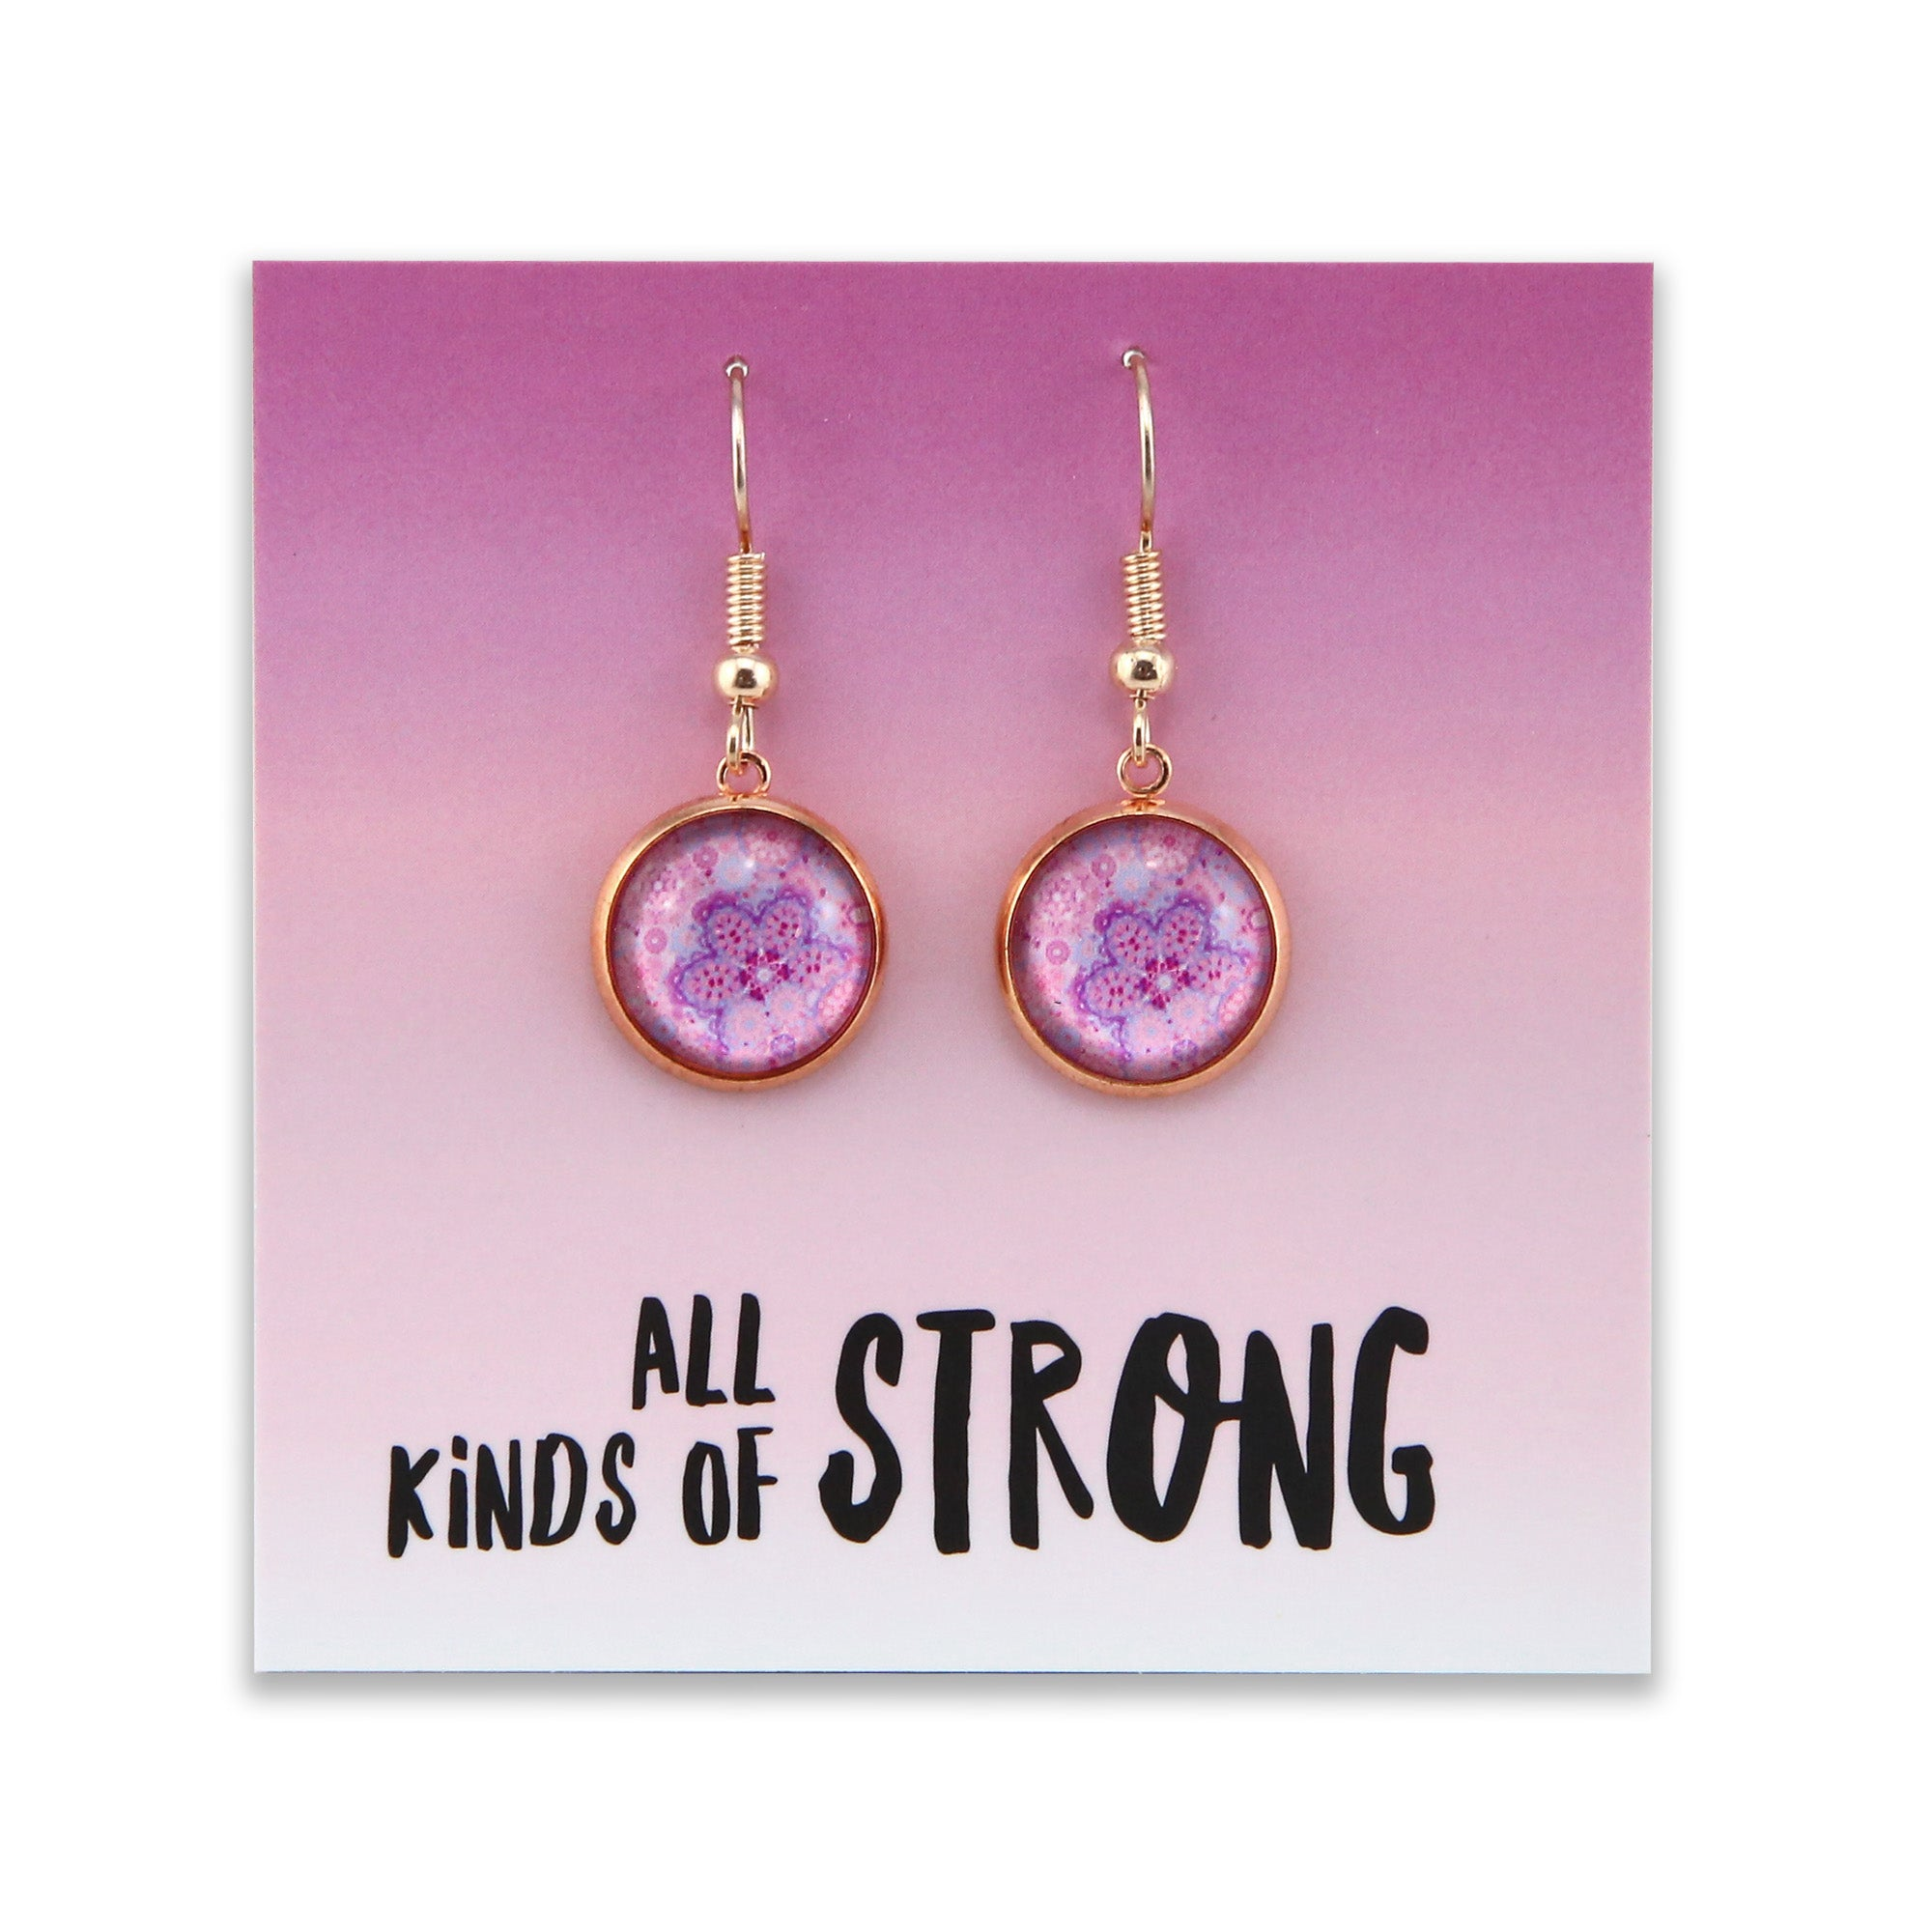 Pink Collection - All Kinds of Strong - Stainless Steel Rose Gold Dangle Earrings - Pink Ice (2203)